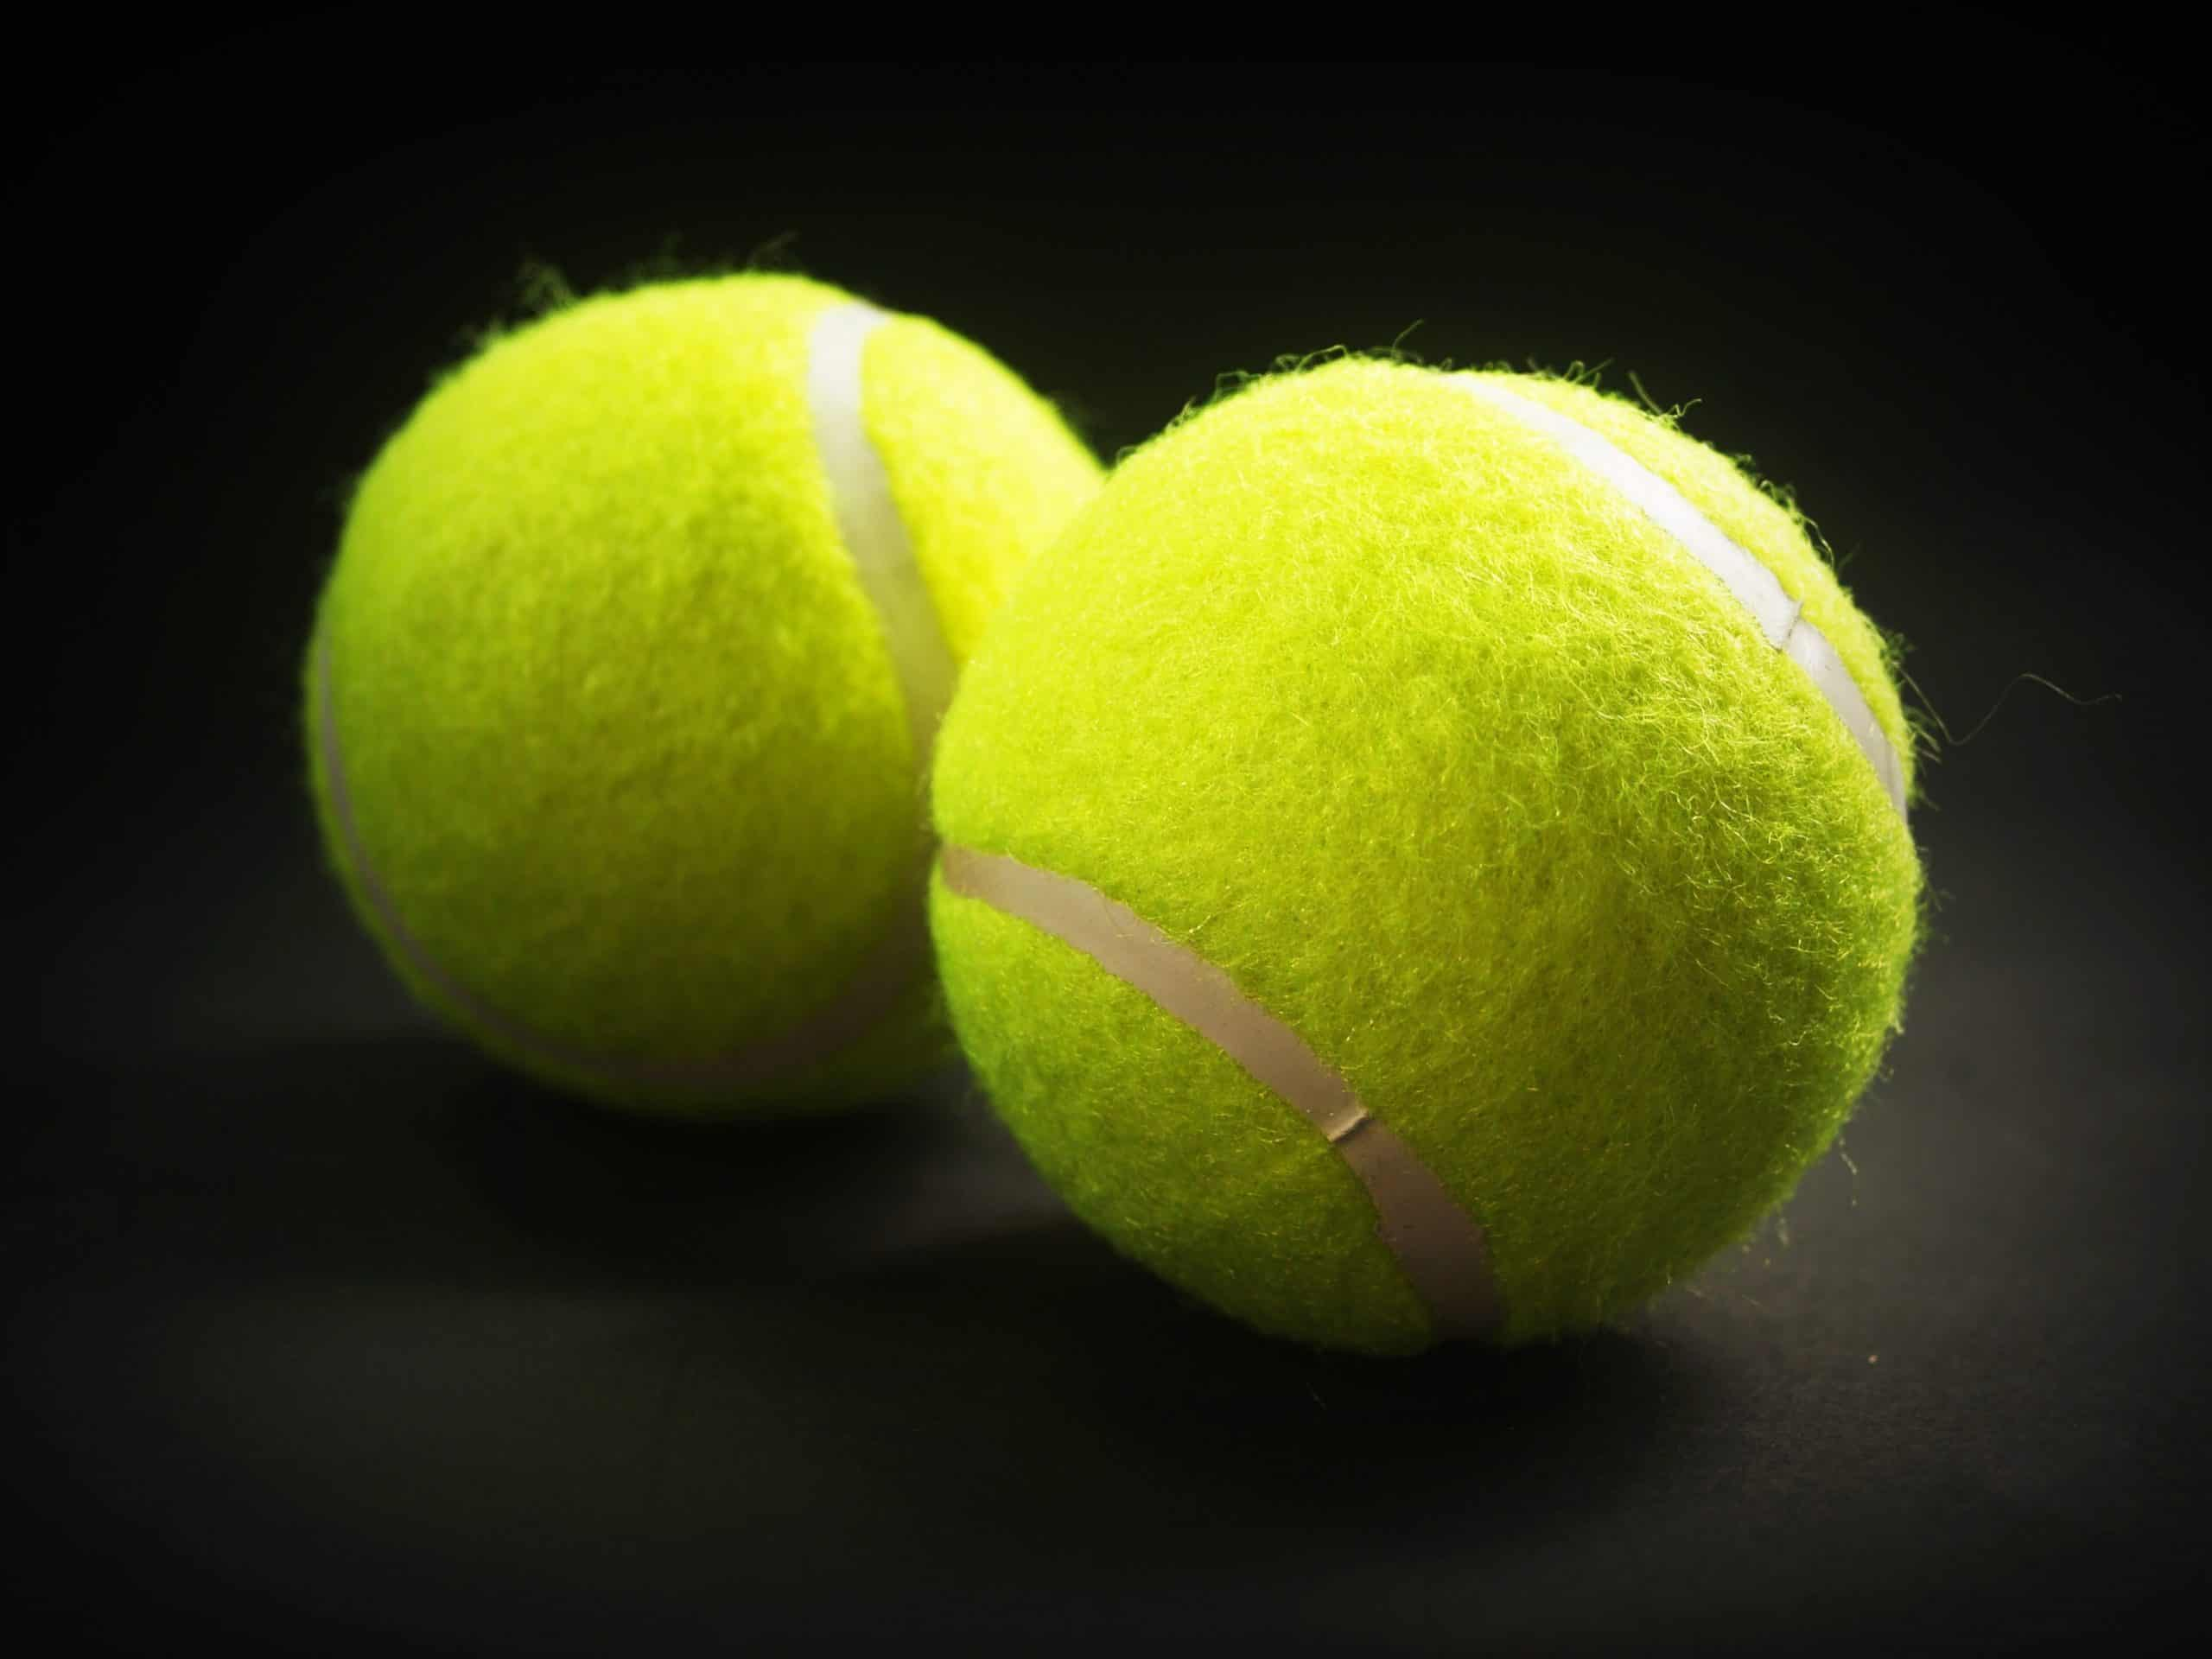 Get the Low Down on Tennis Lingo